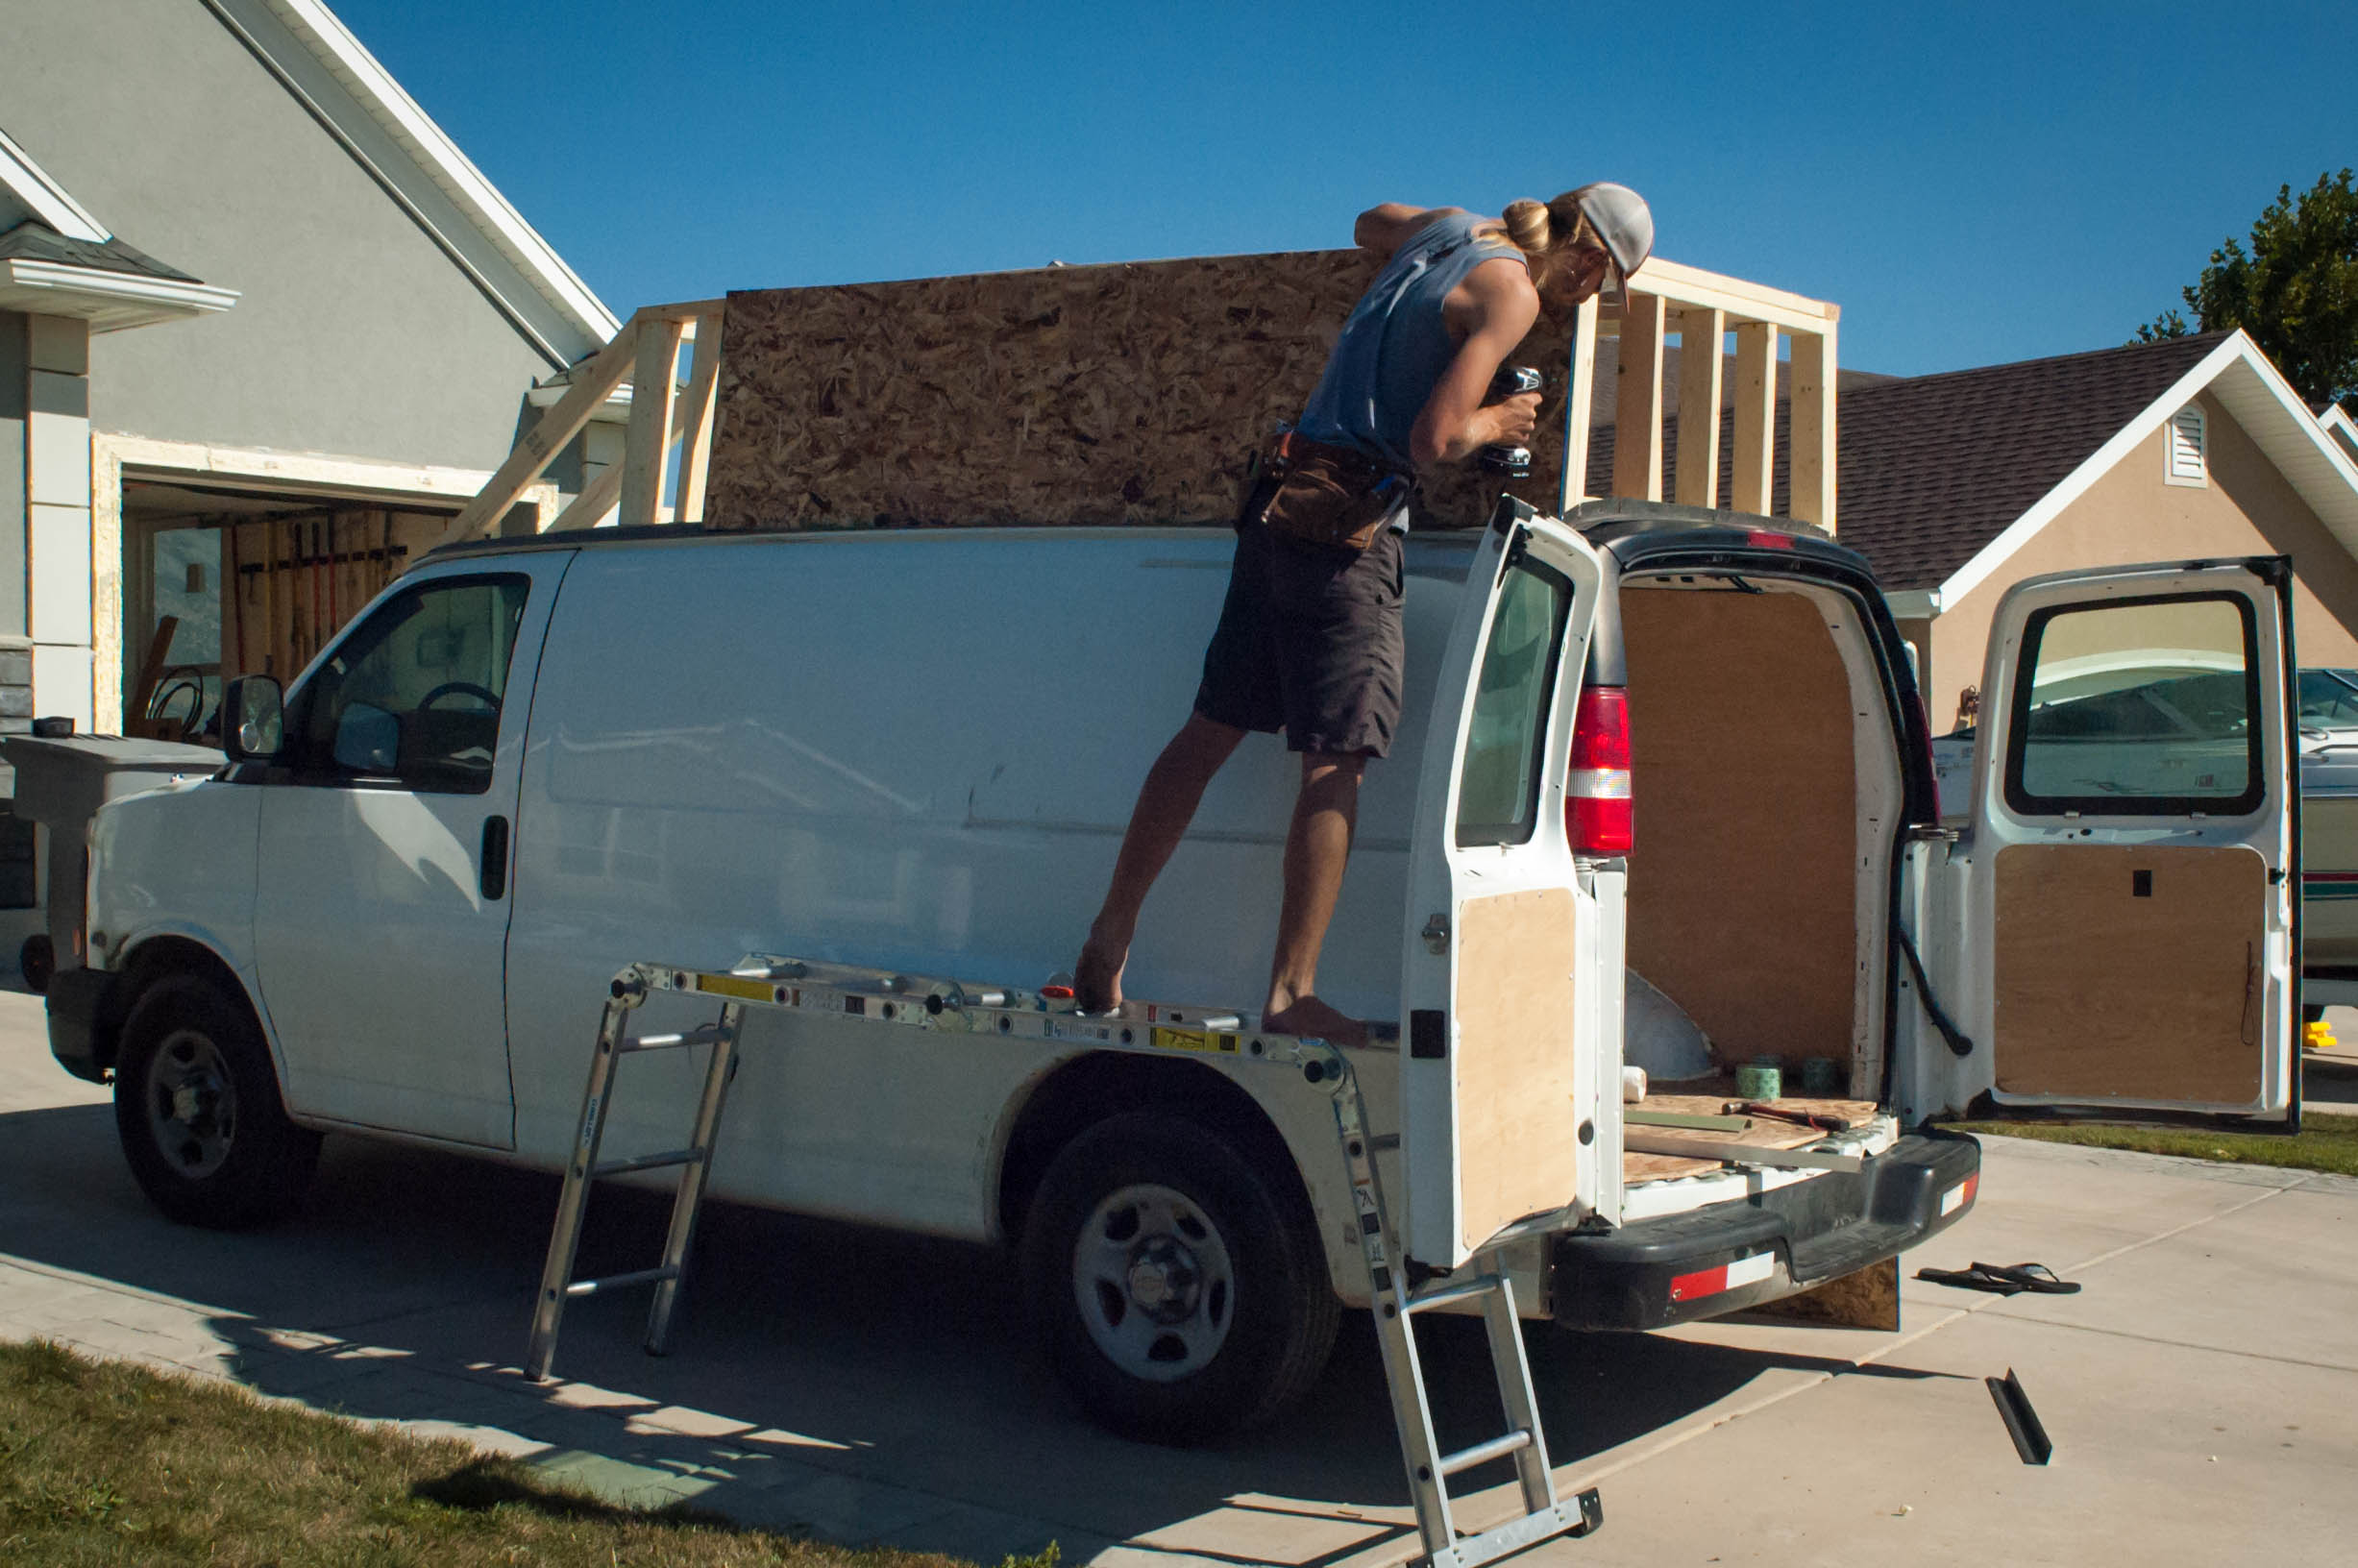 All about Simple Homemade Truck Camper With Diy Air